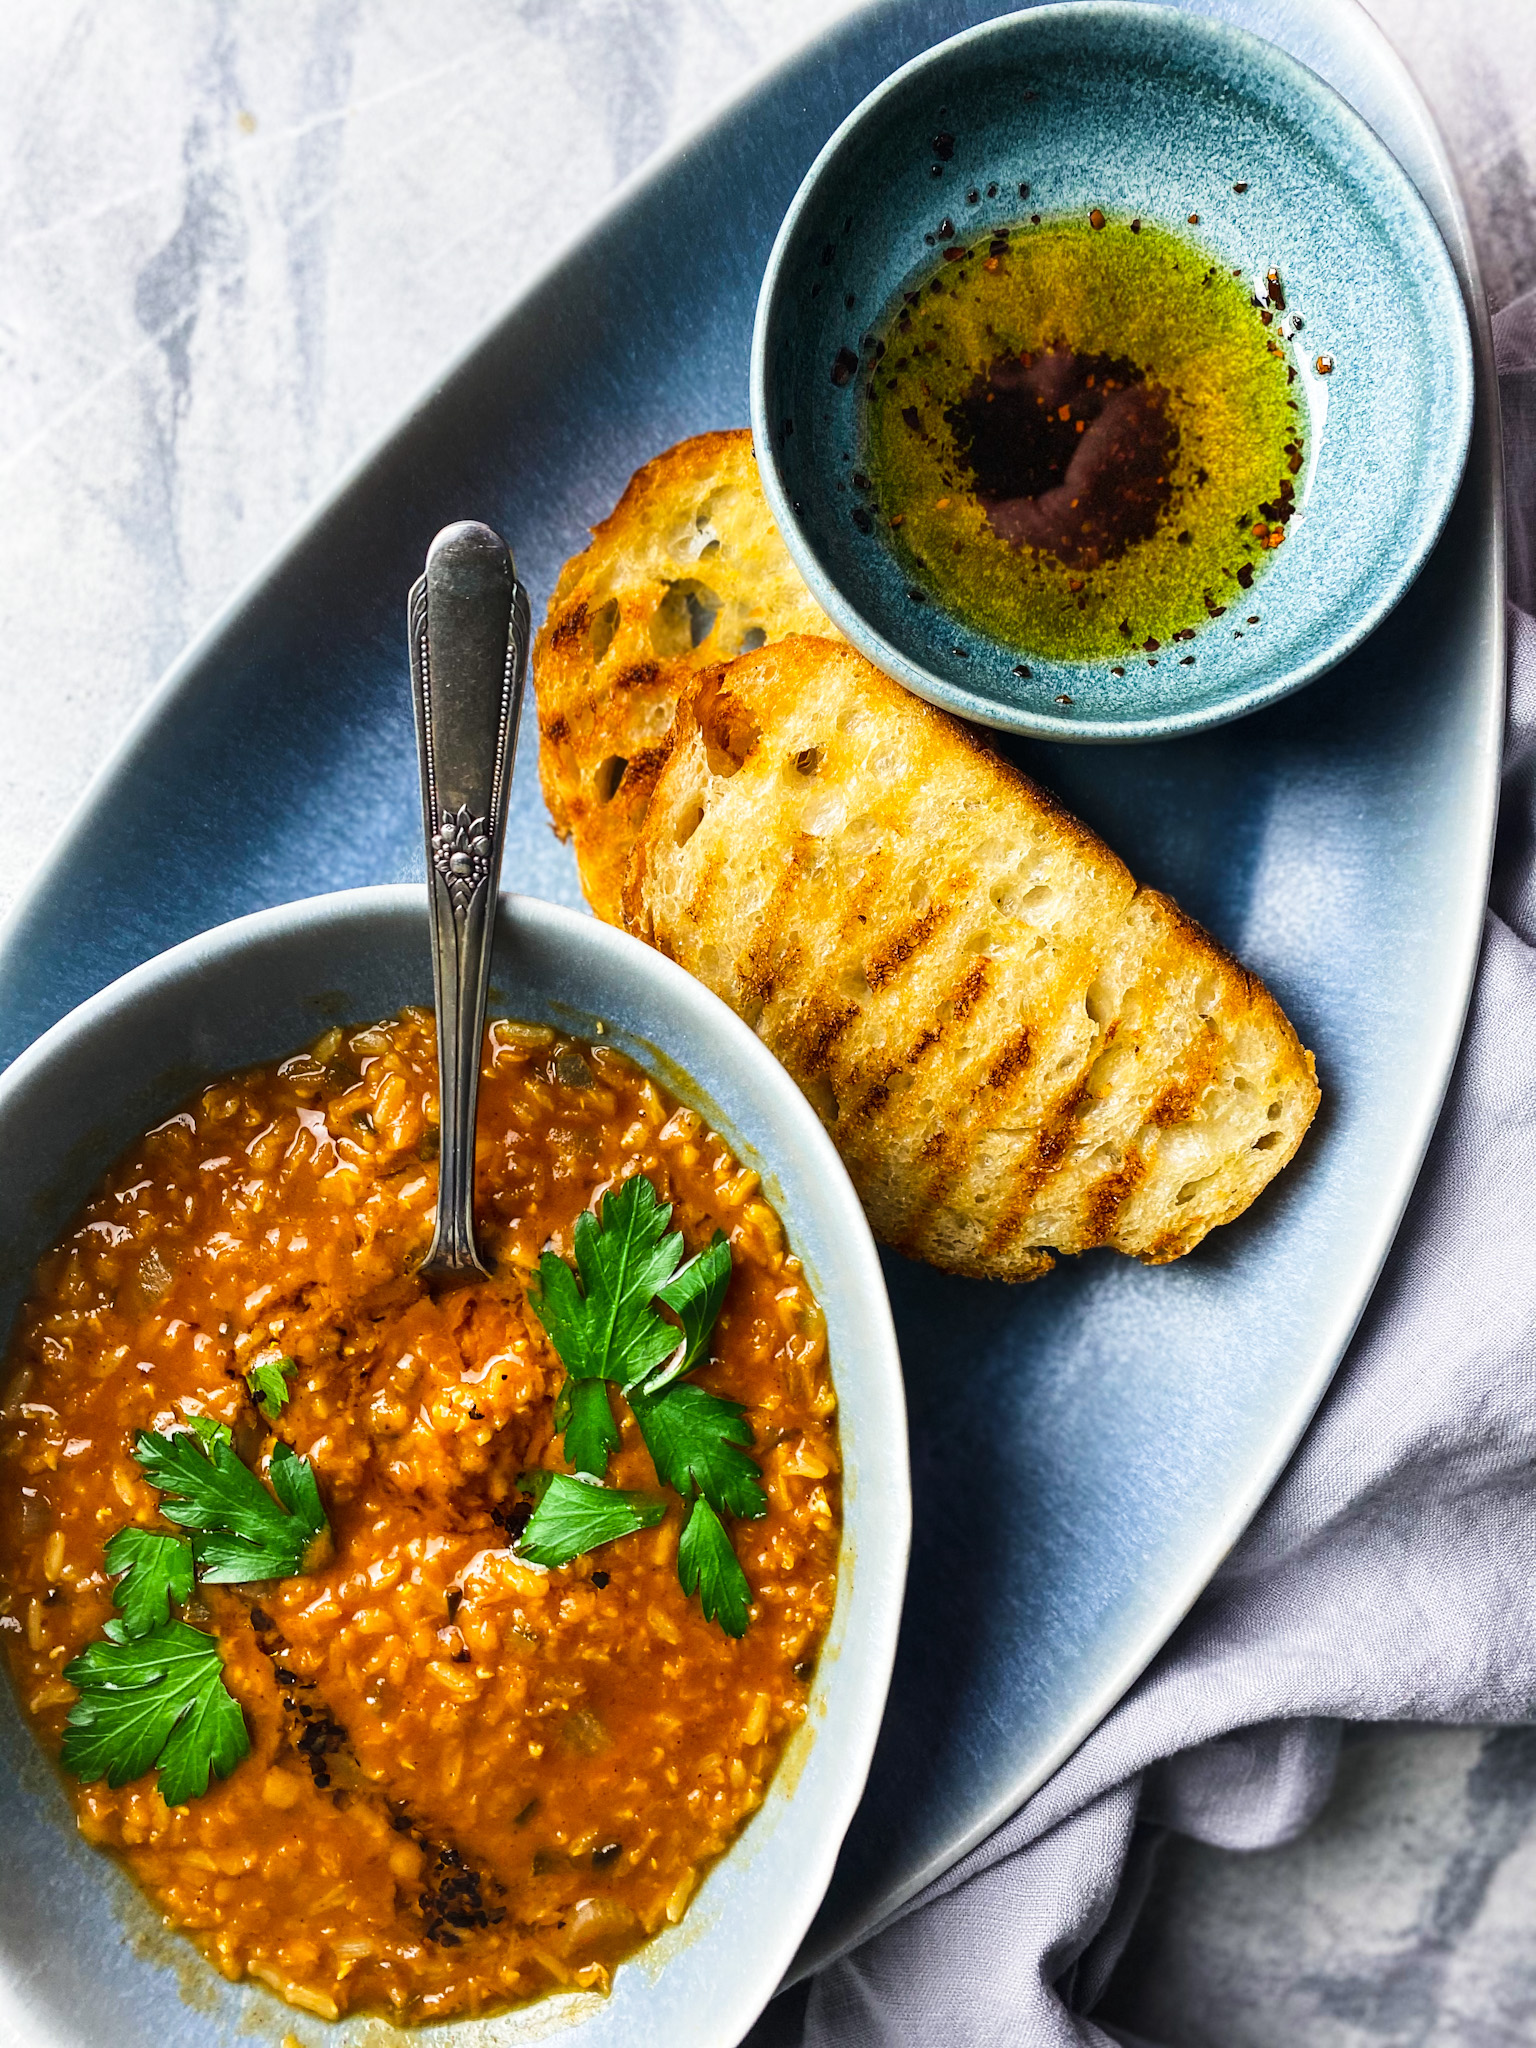 Redi lentil soup with grilled bread and toasted Aleppo pepper olive oil